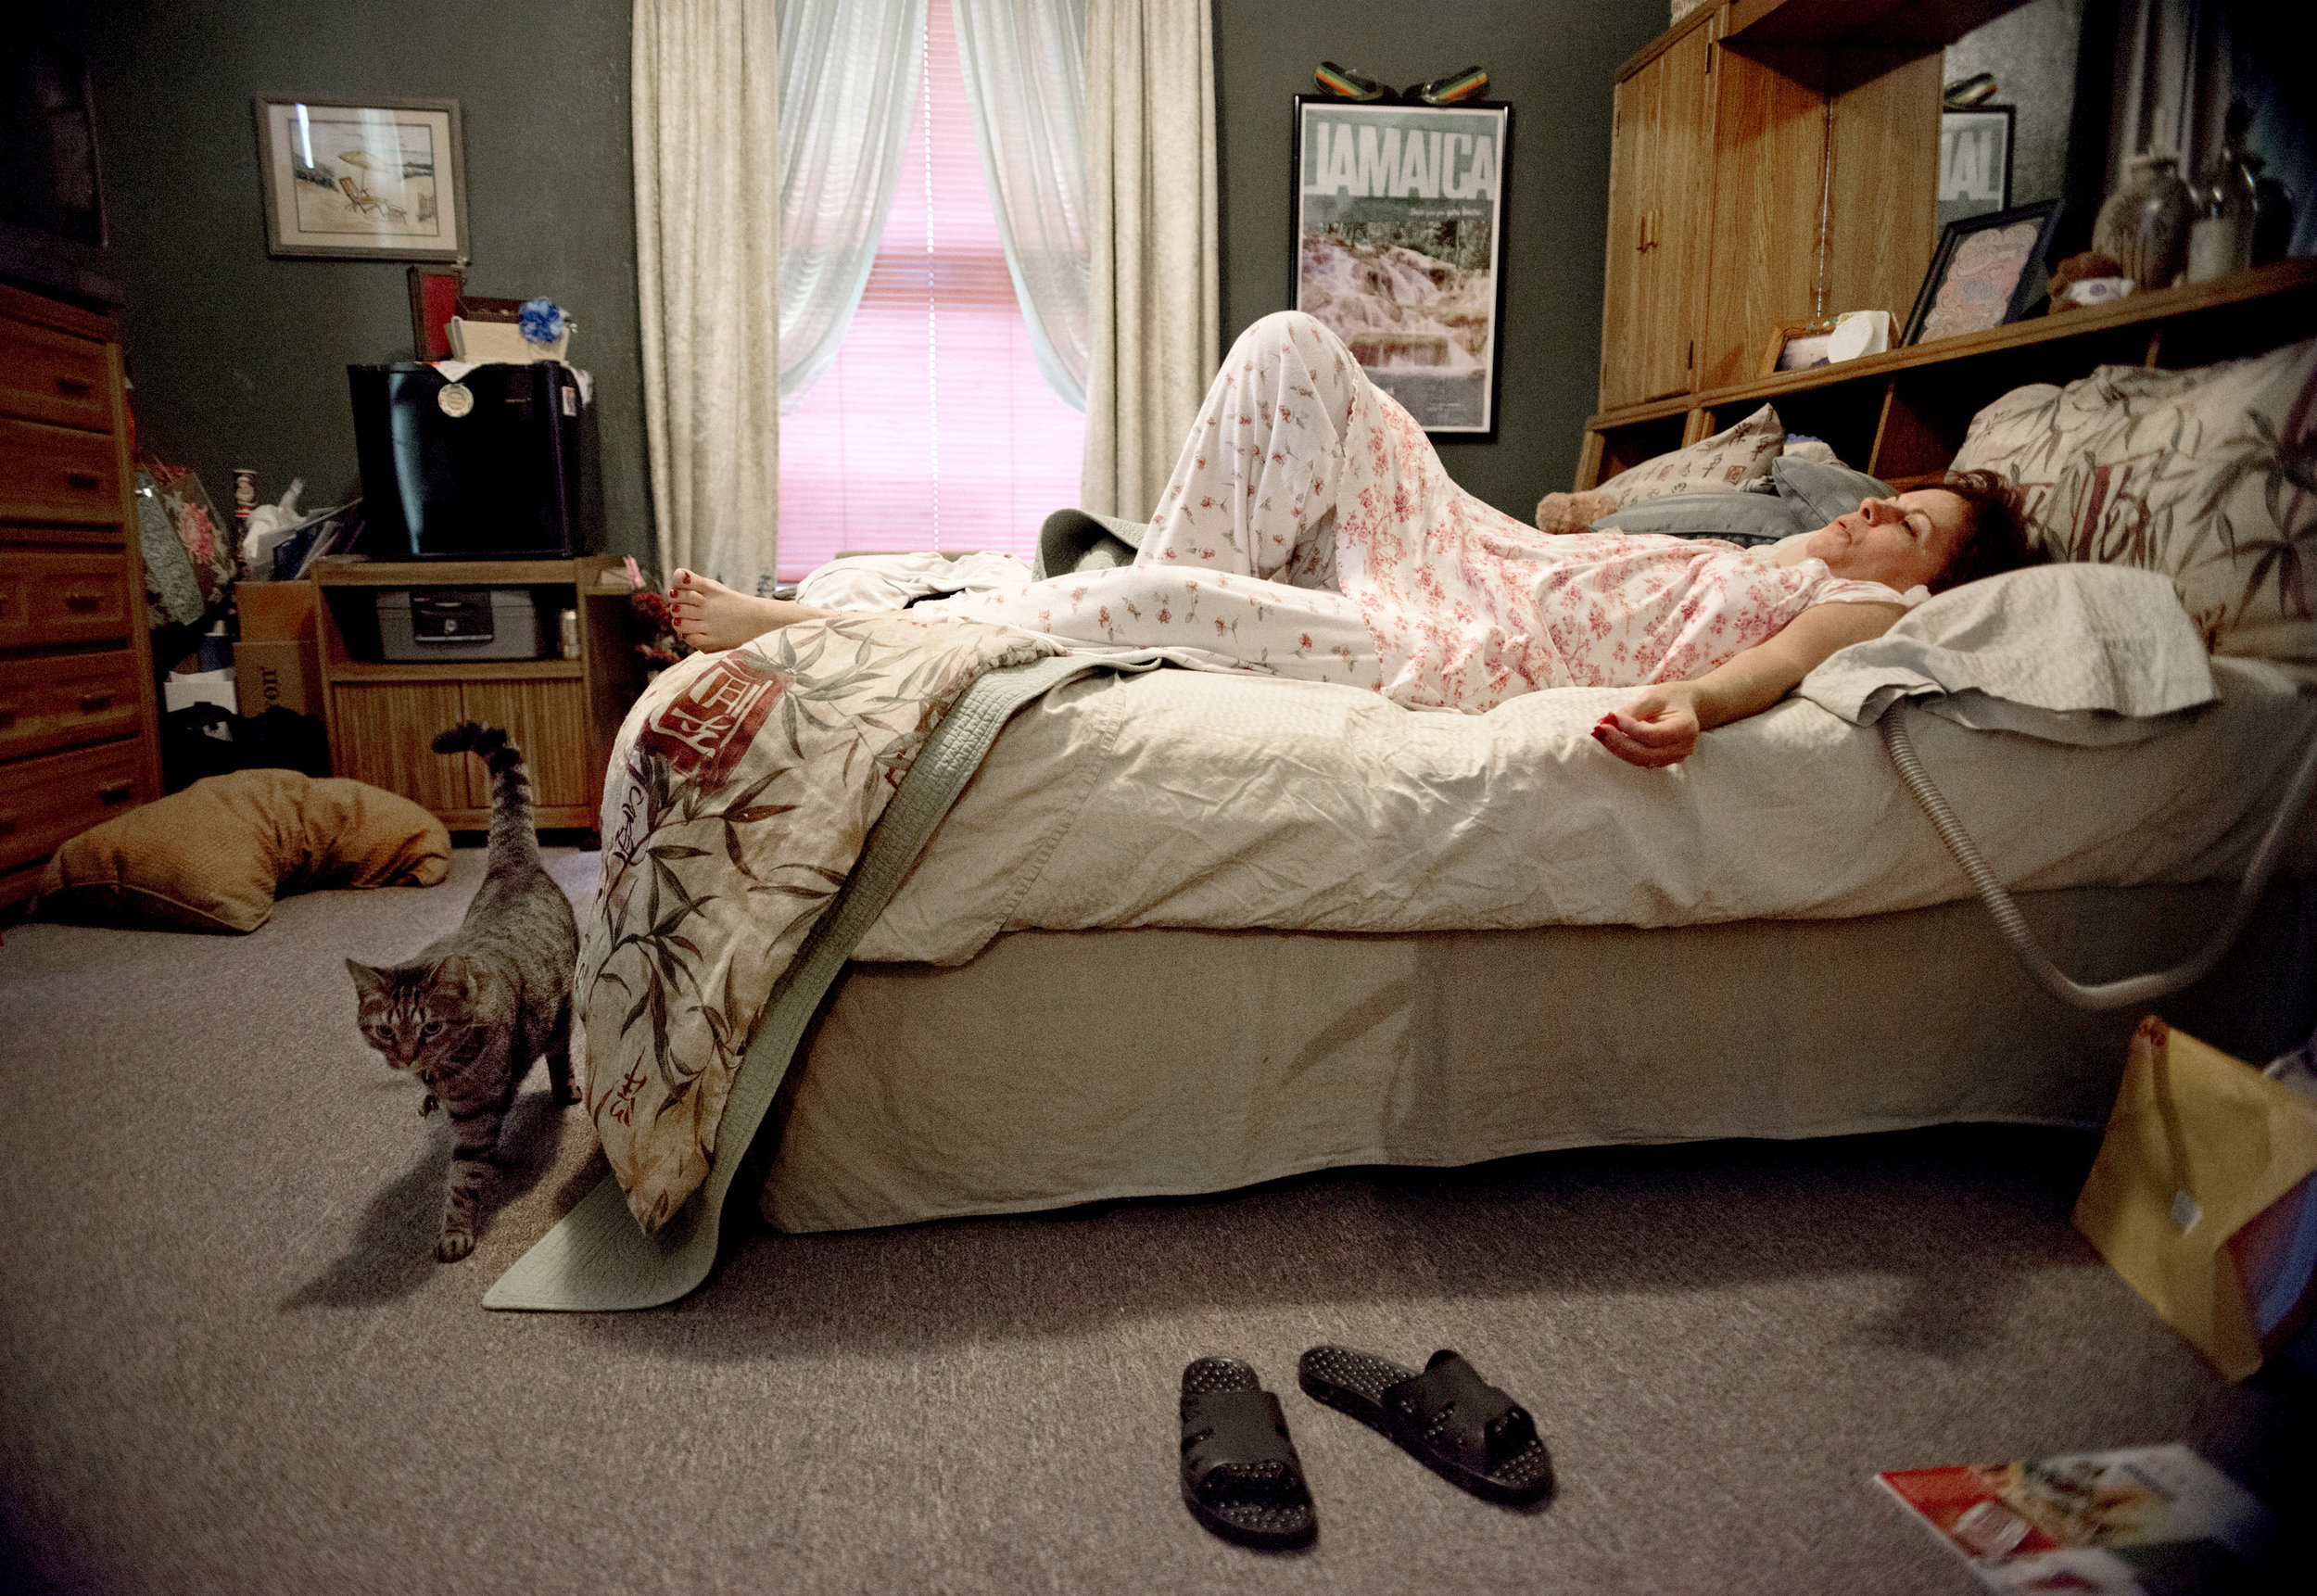 Gayle Ayala lies in her bed in her apartment at the Hospitality House in Chester Ill. on her day off from the four jobs she works. She moved 850 miles from Fairfax, Va. to Chester, Ill.  to be near her husband, David Ayala, who was an inmate at Tamms Correctional Center, a Maximum Security prison, until he was transferred to a prison in Nevada (where he and Gayle now live) in Chester, Ill. Gayle and David met through inmate essay-writing program, Tamms Year 10. She fell in love with him in May of 2009, and the couple was engaged Jan. 1, 2010. She quit her job as a legal secretary, where she was earning nearly six figures, and moved to Chester. Through the Hospitality House Gayle has found comfort in meeting other women married to men with long-term or life sentences. She describes it as a sisterhood.